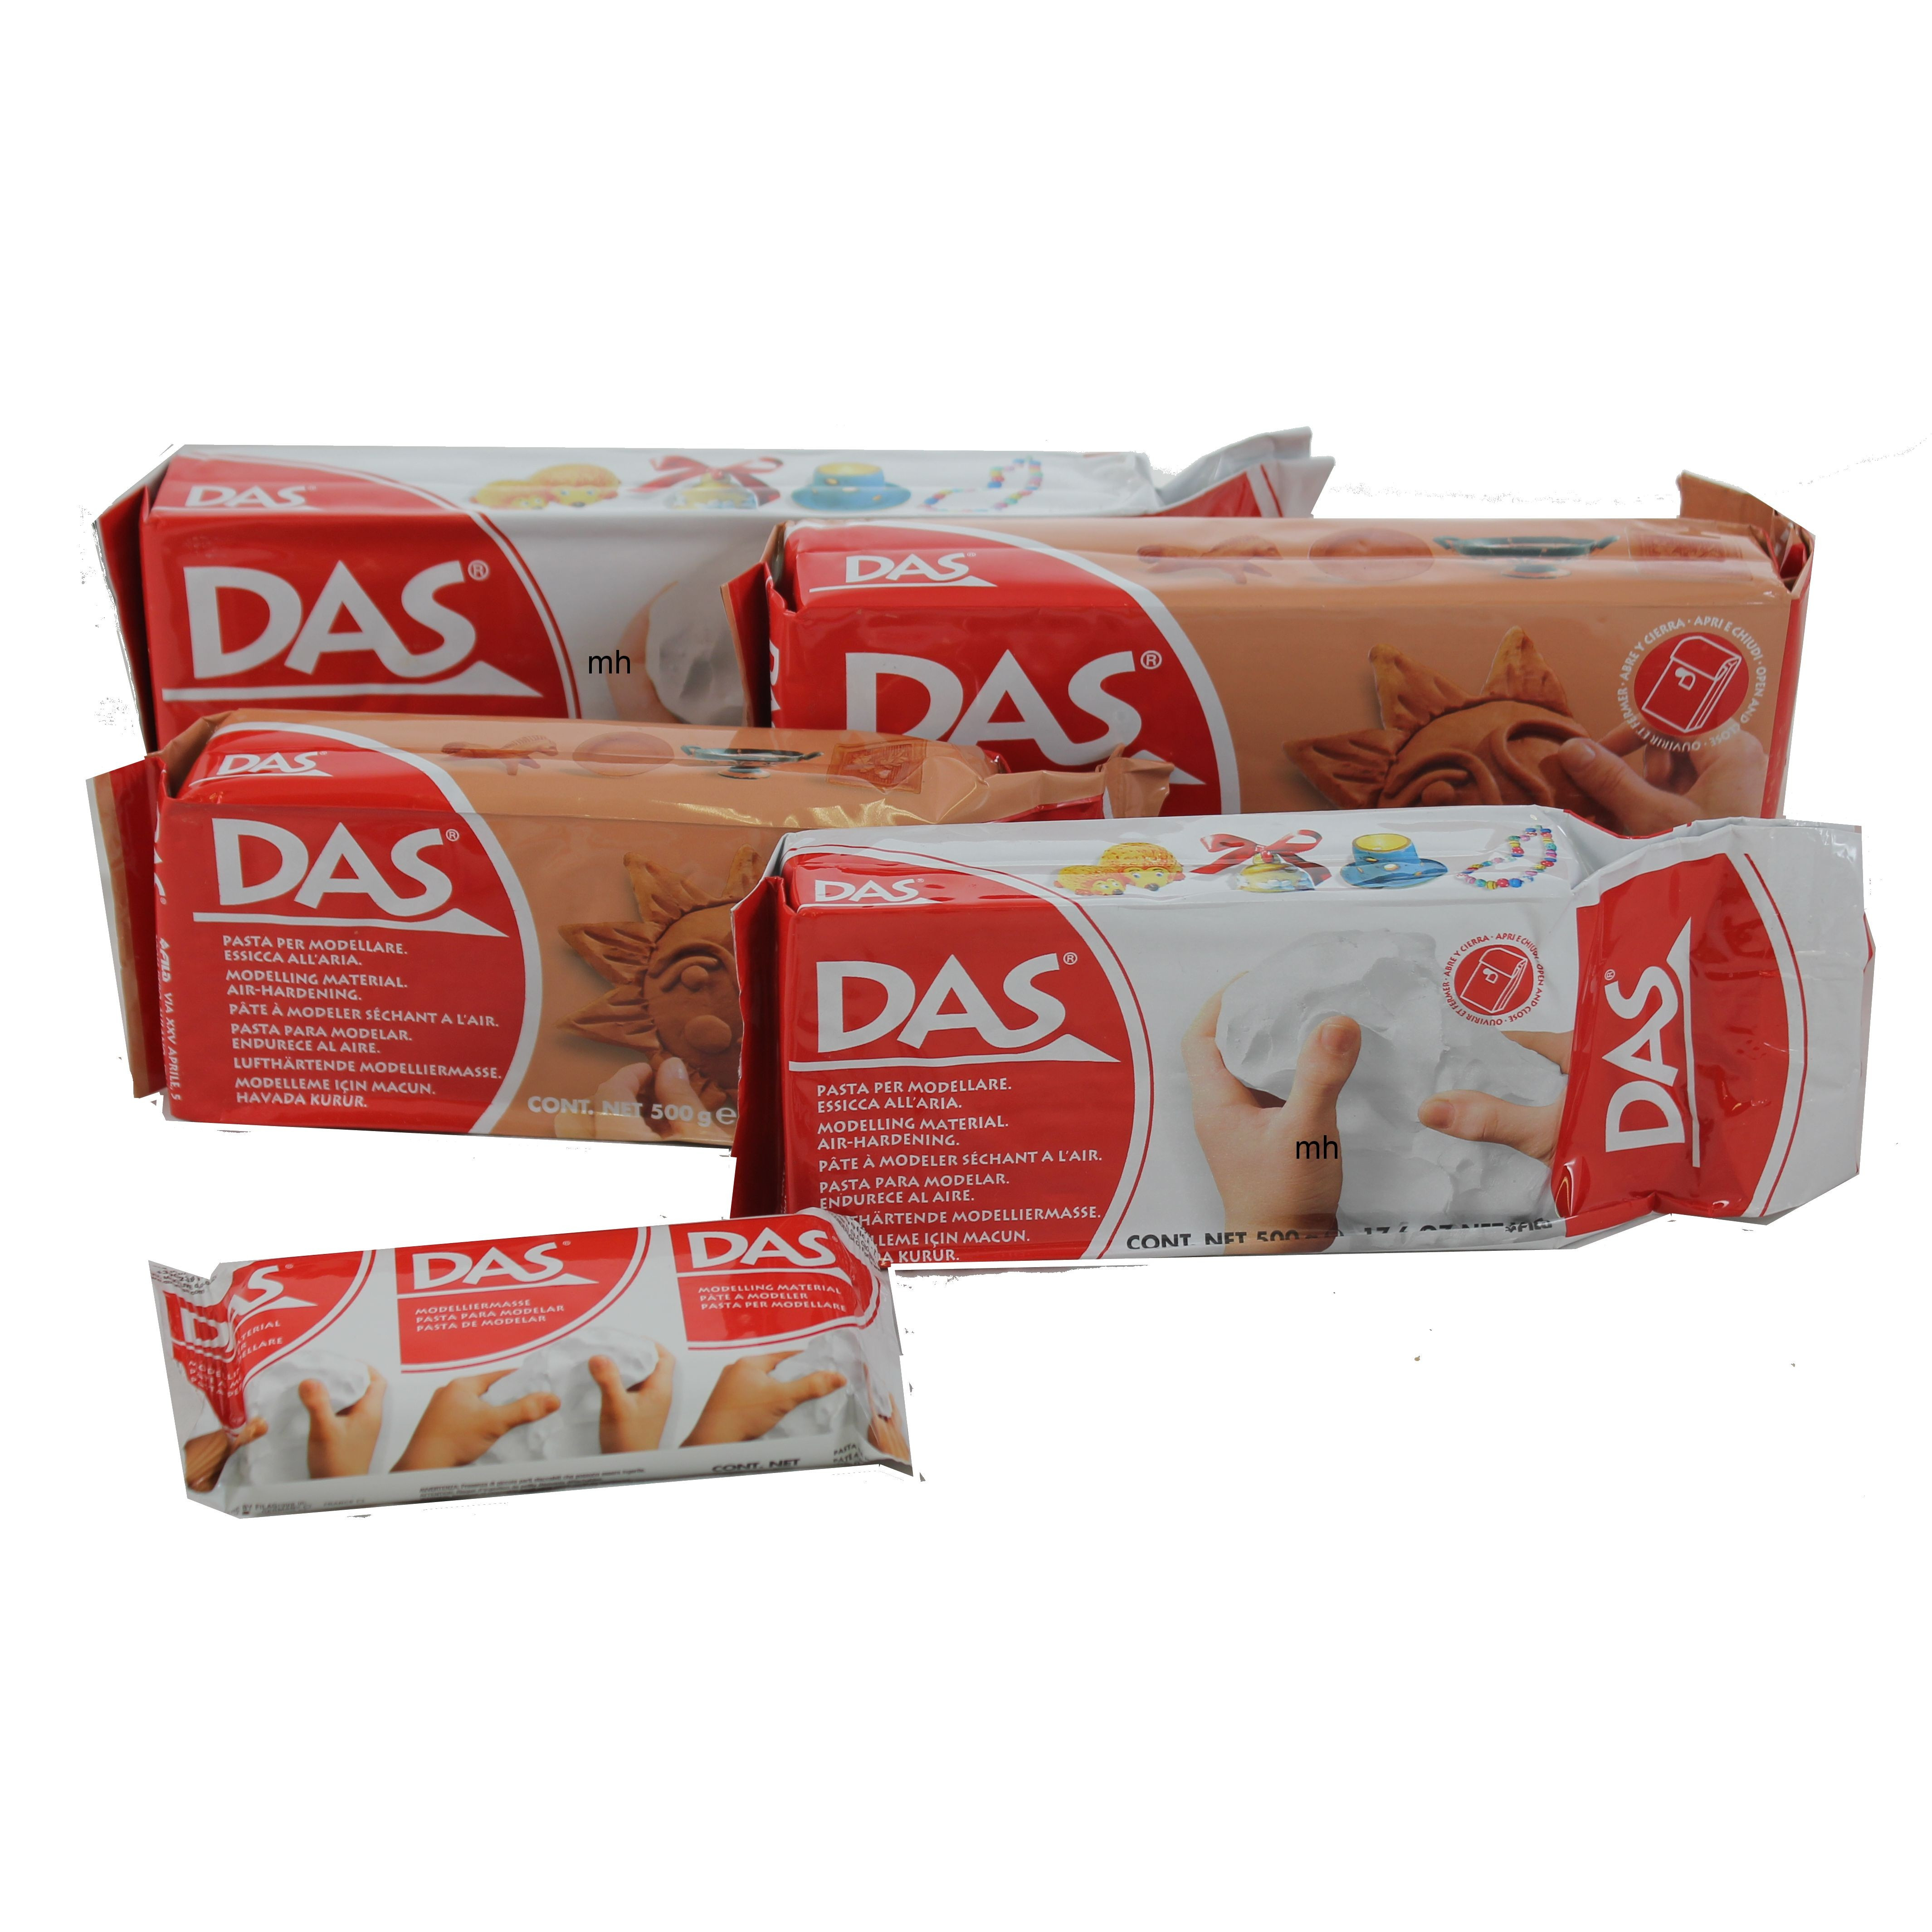 Air Dry Clay Beautiful Das Air Dry Clay Modelling Material White or Terracotta Of Top 47 Images Air Dry Clay